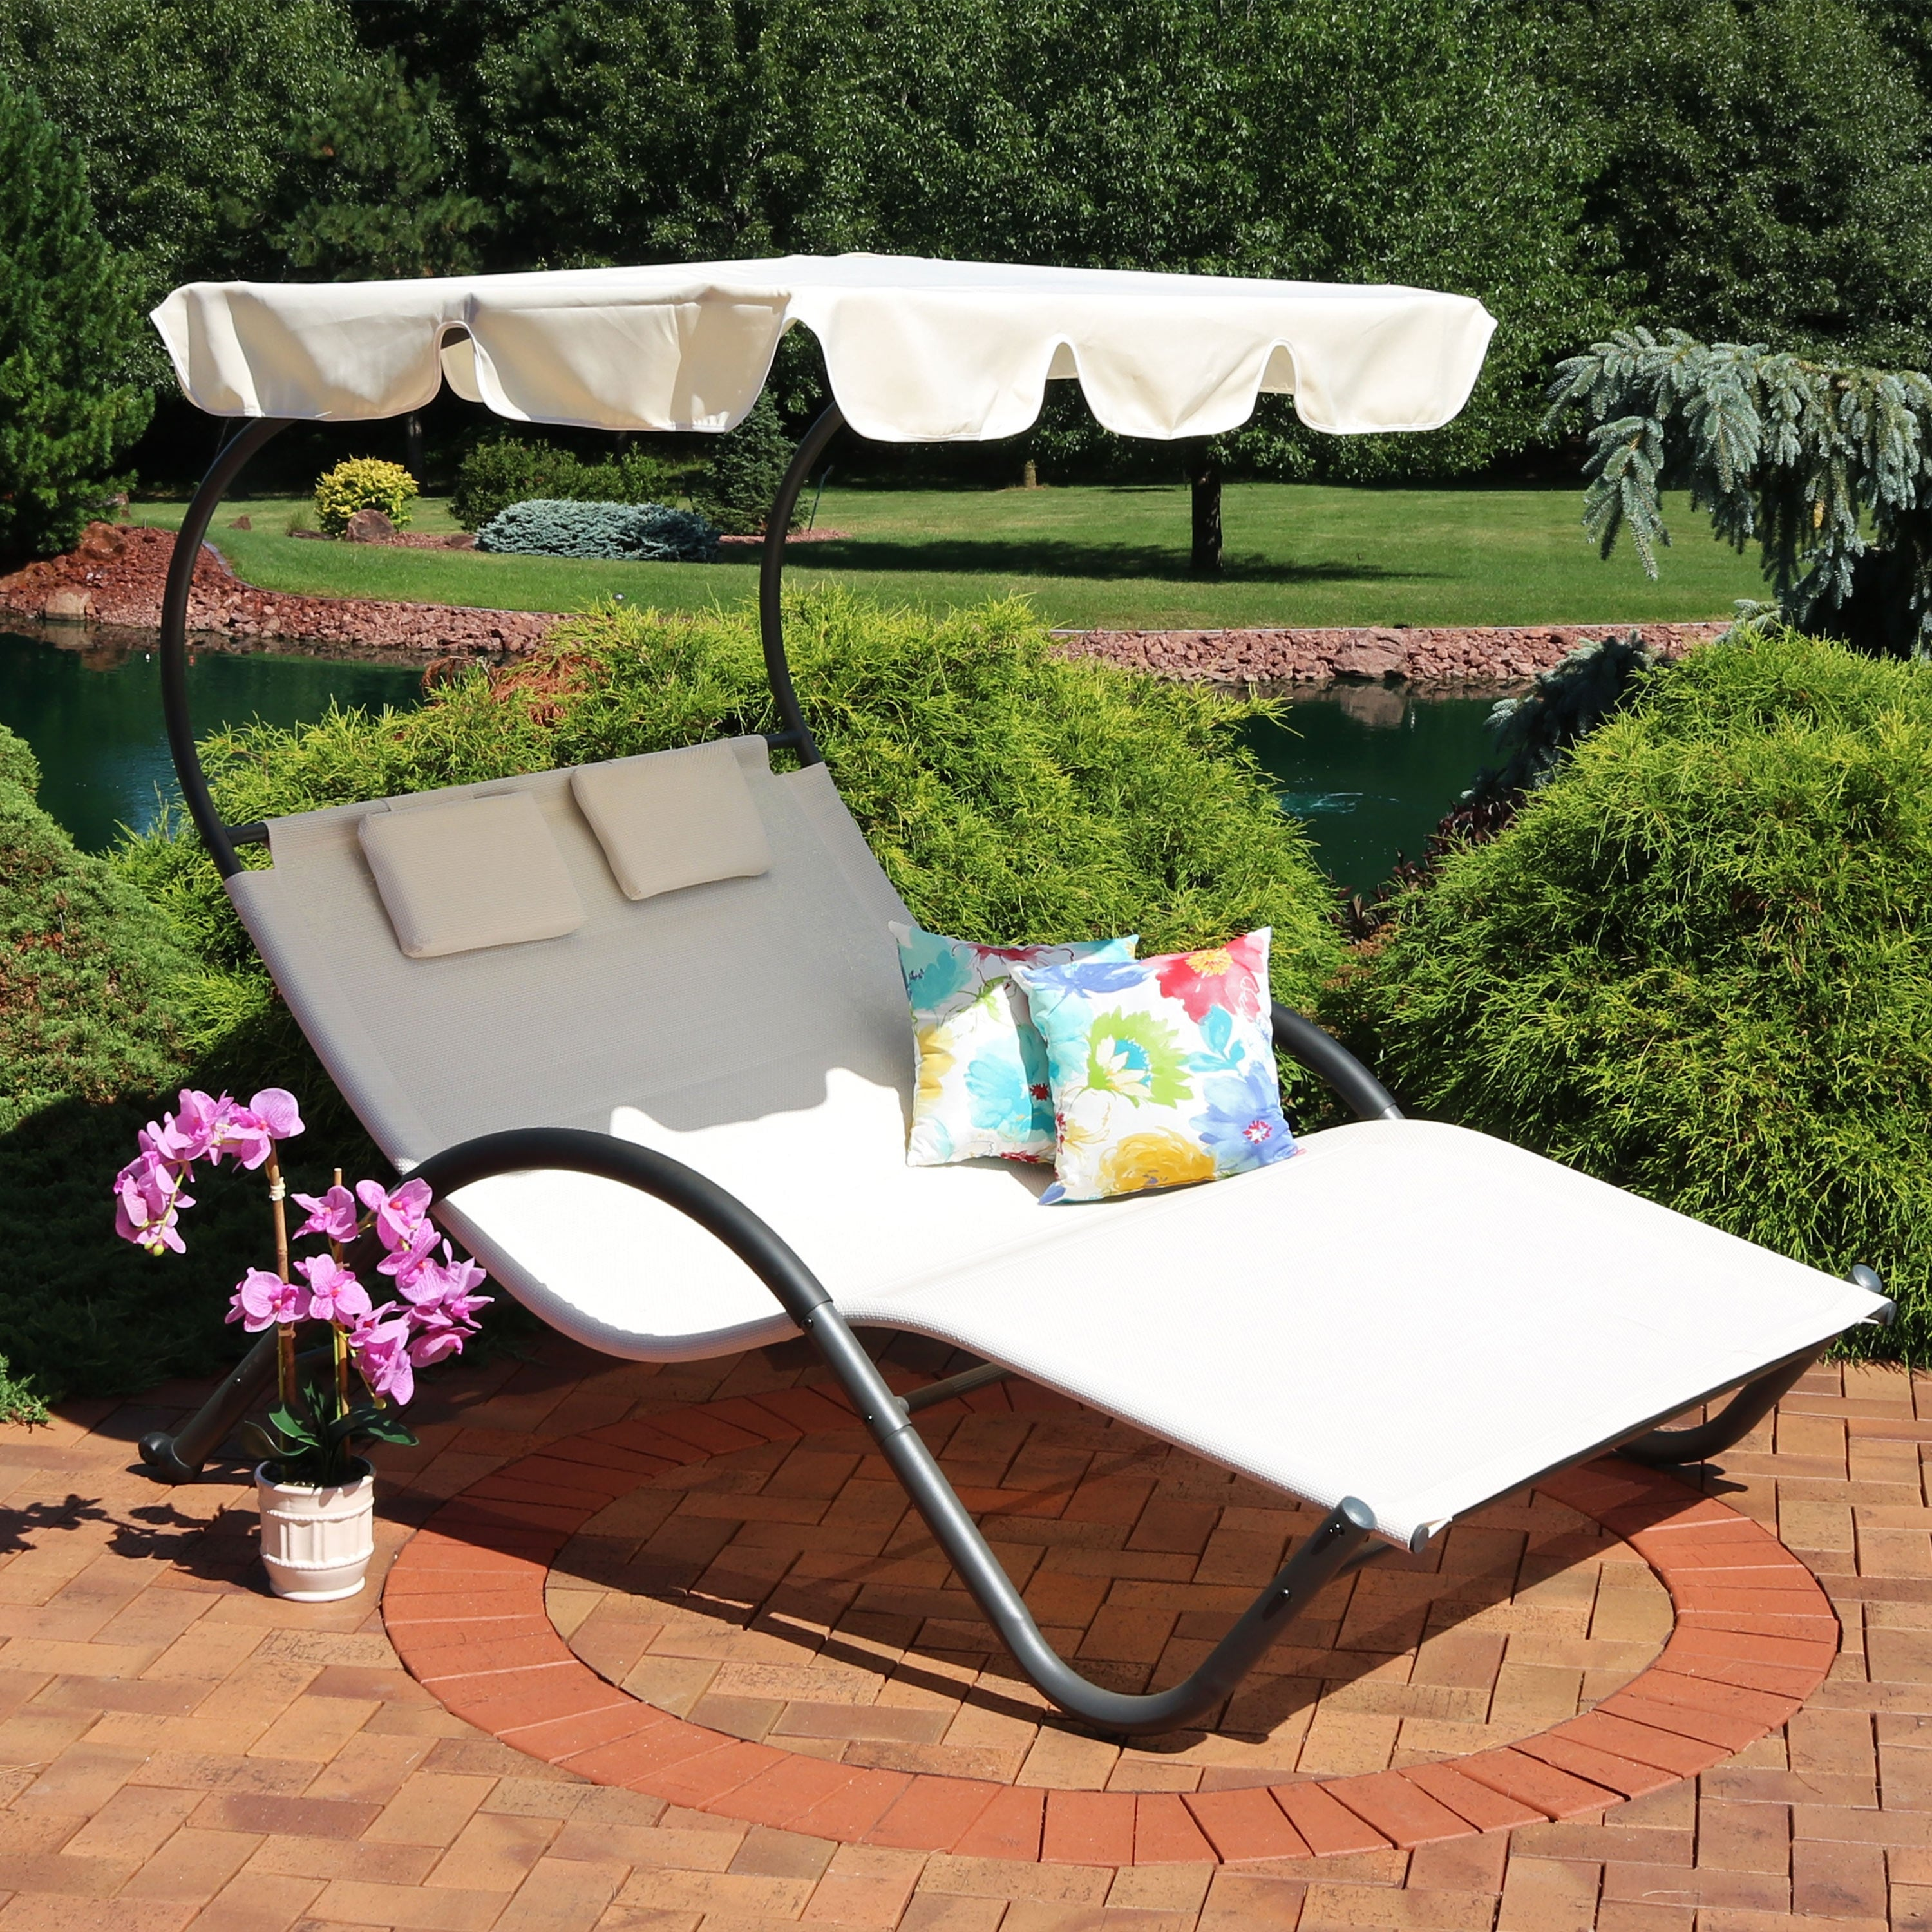 Sunnydaze Double Chaise Lounge With Canopy Shade And Headrest Pillows Beige Overstock 22890405